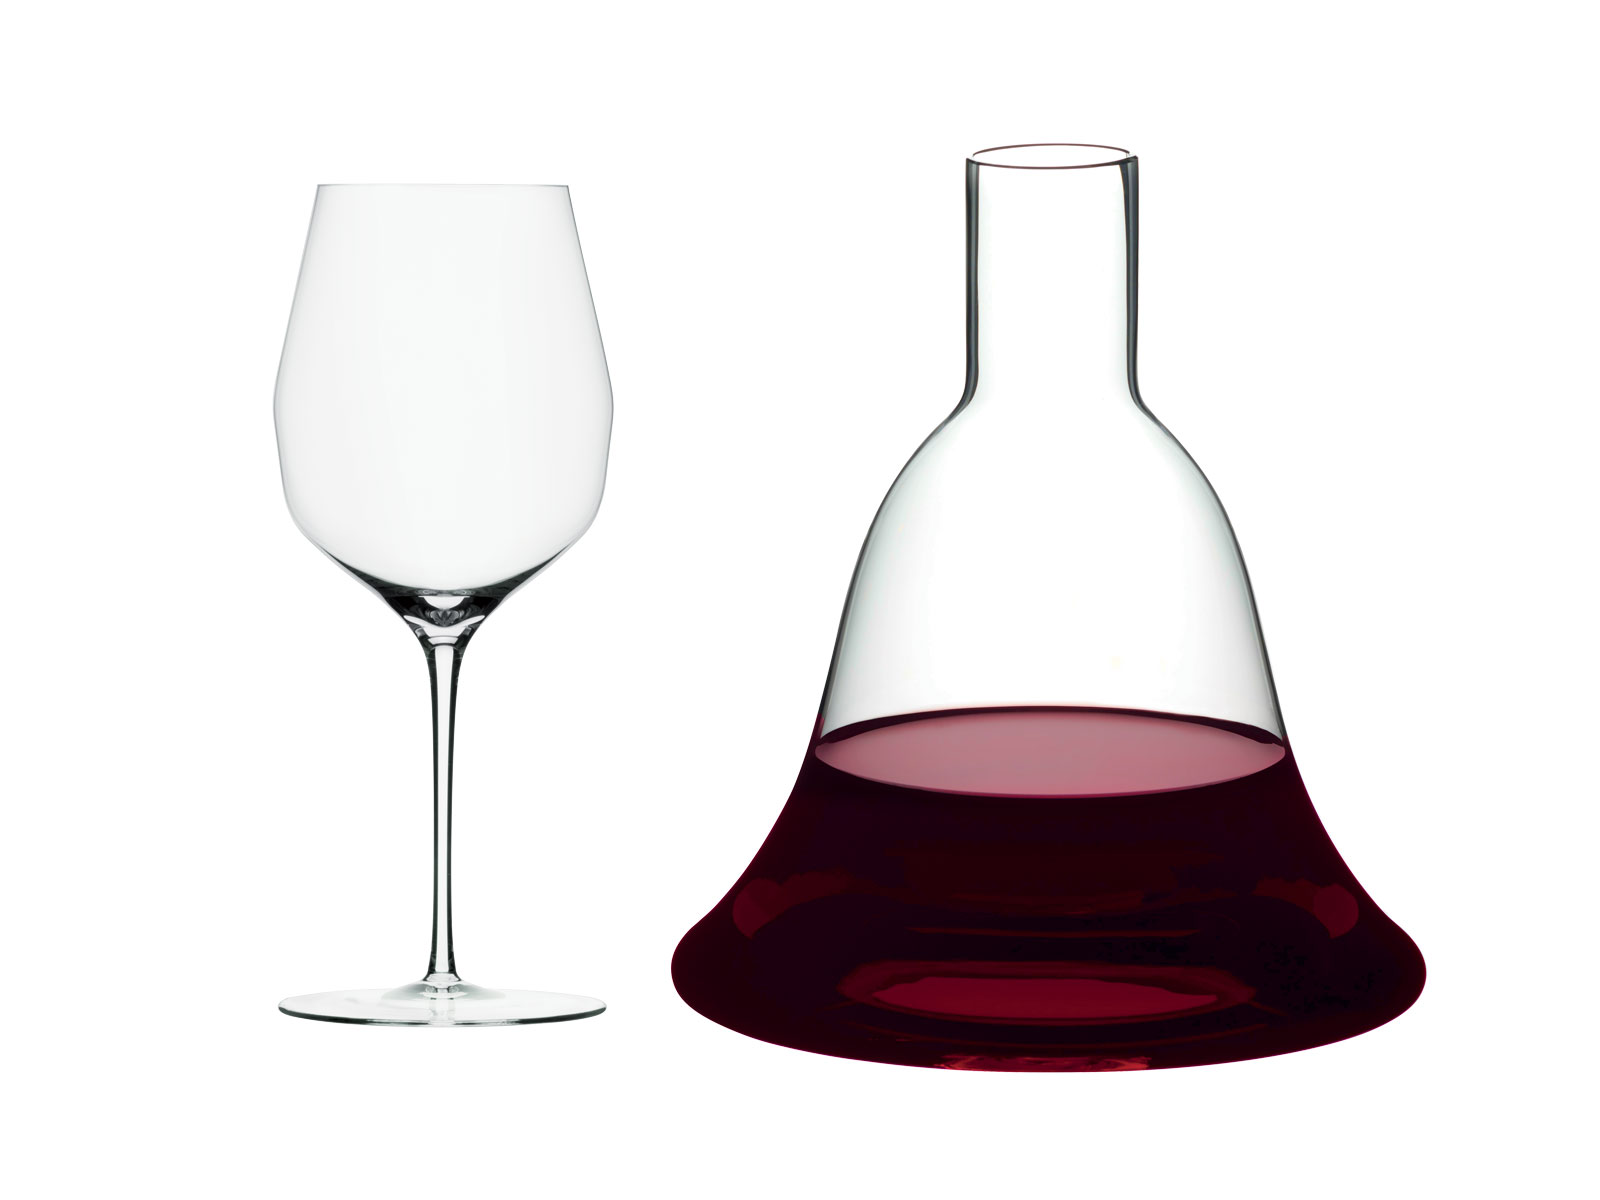 The Decanter and Wine Glass Food & Wine Editors Are Obsessed With